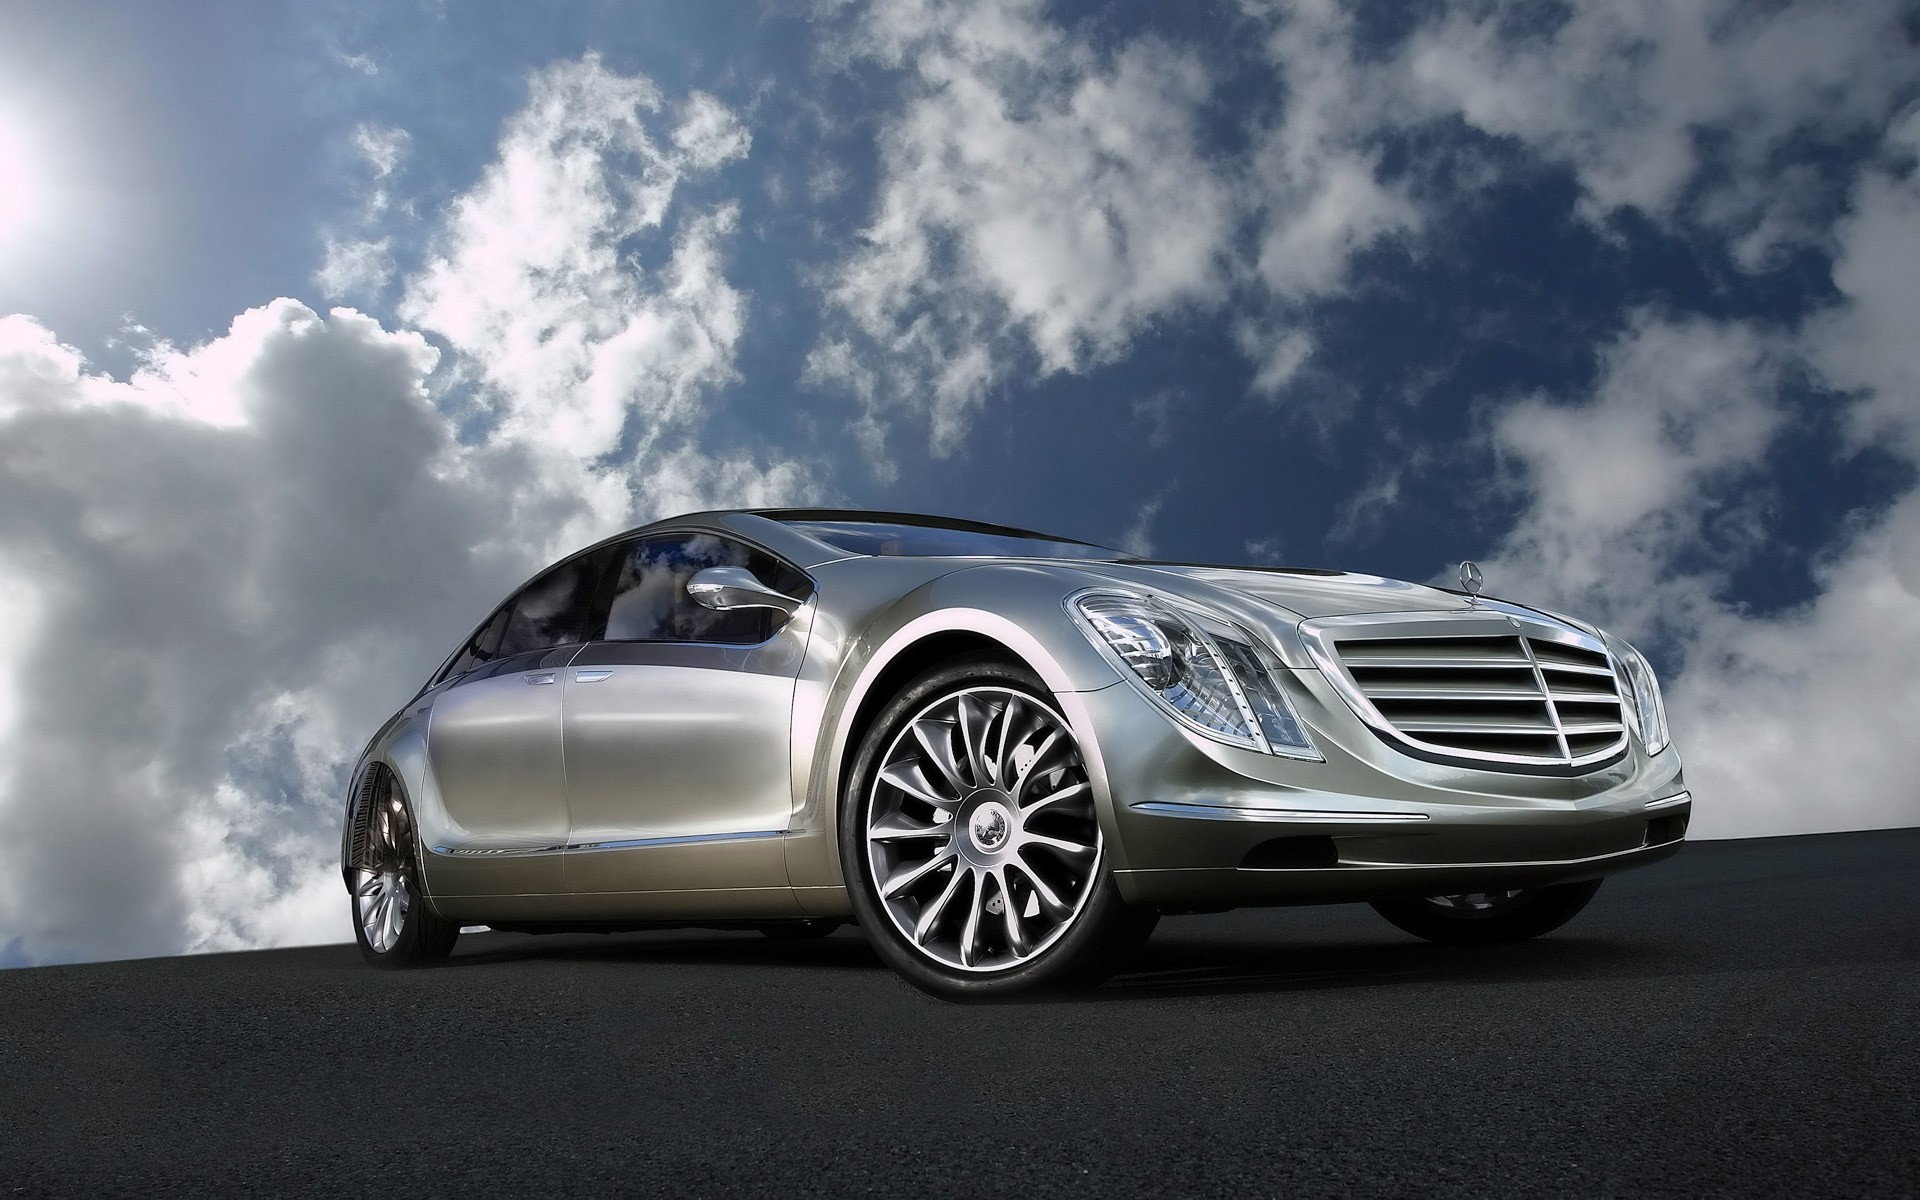 Mercedes E-Class, sedan - gorgeous photos on your desktop 1920x1200